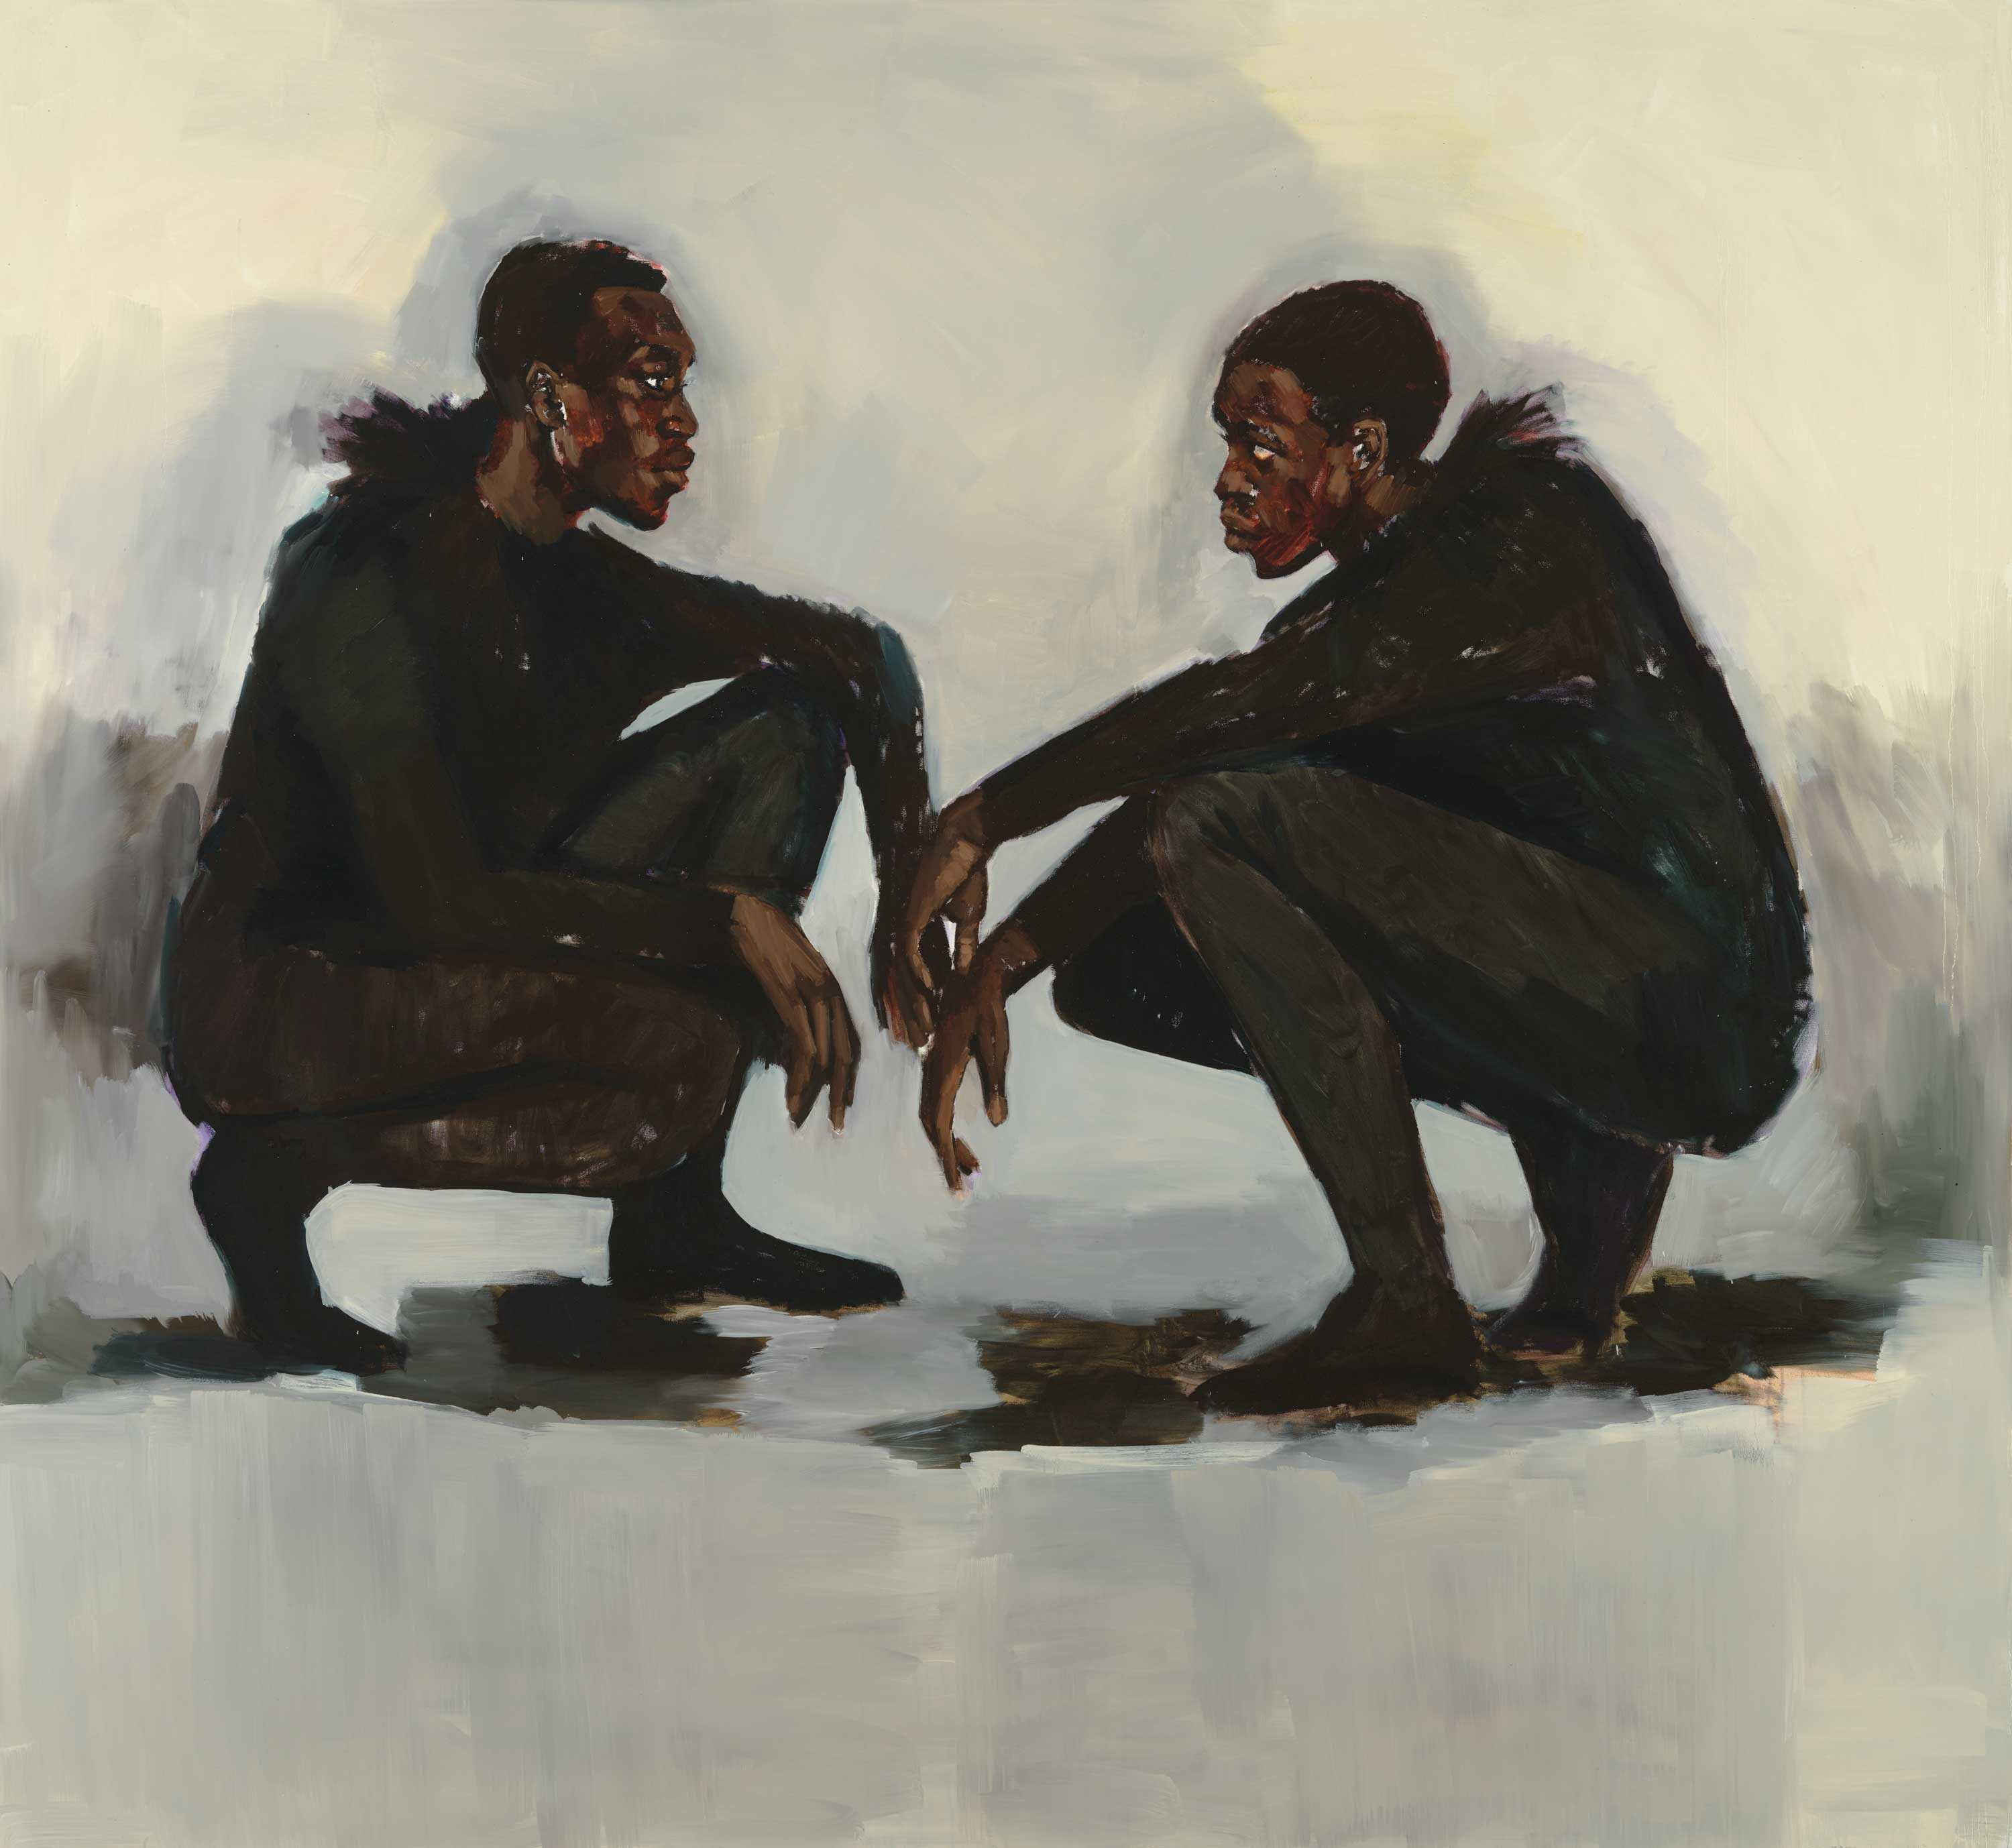 Lynette Yiadom-Boakye, No Need of Speech 2018 Carnegie Museum of Art, Pittsburgh © Courtesy of the artist and Jack Shainman Gallery, New York. Photo: Bryan Conley